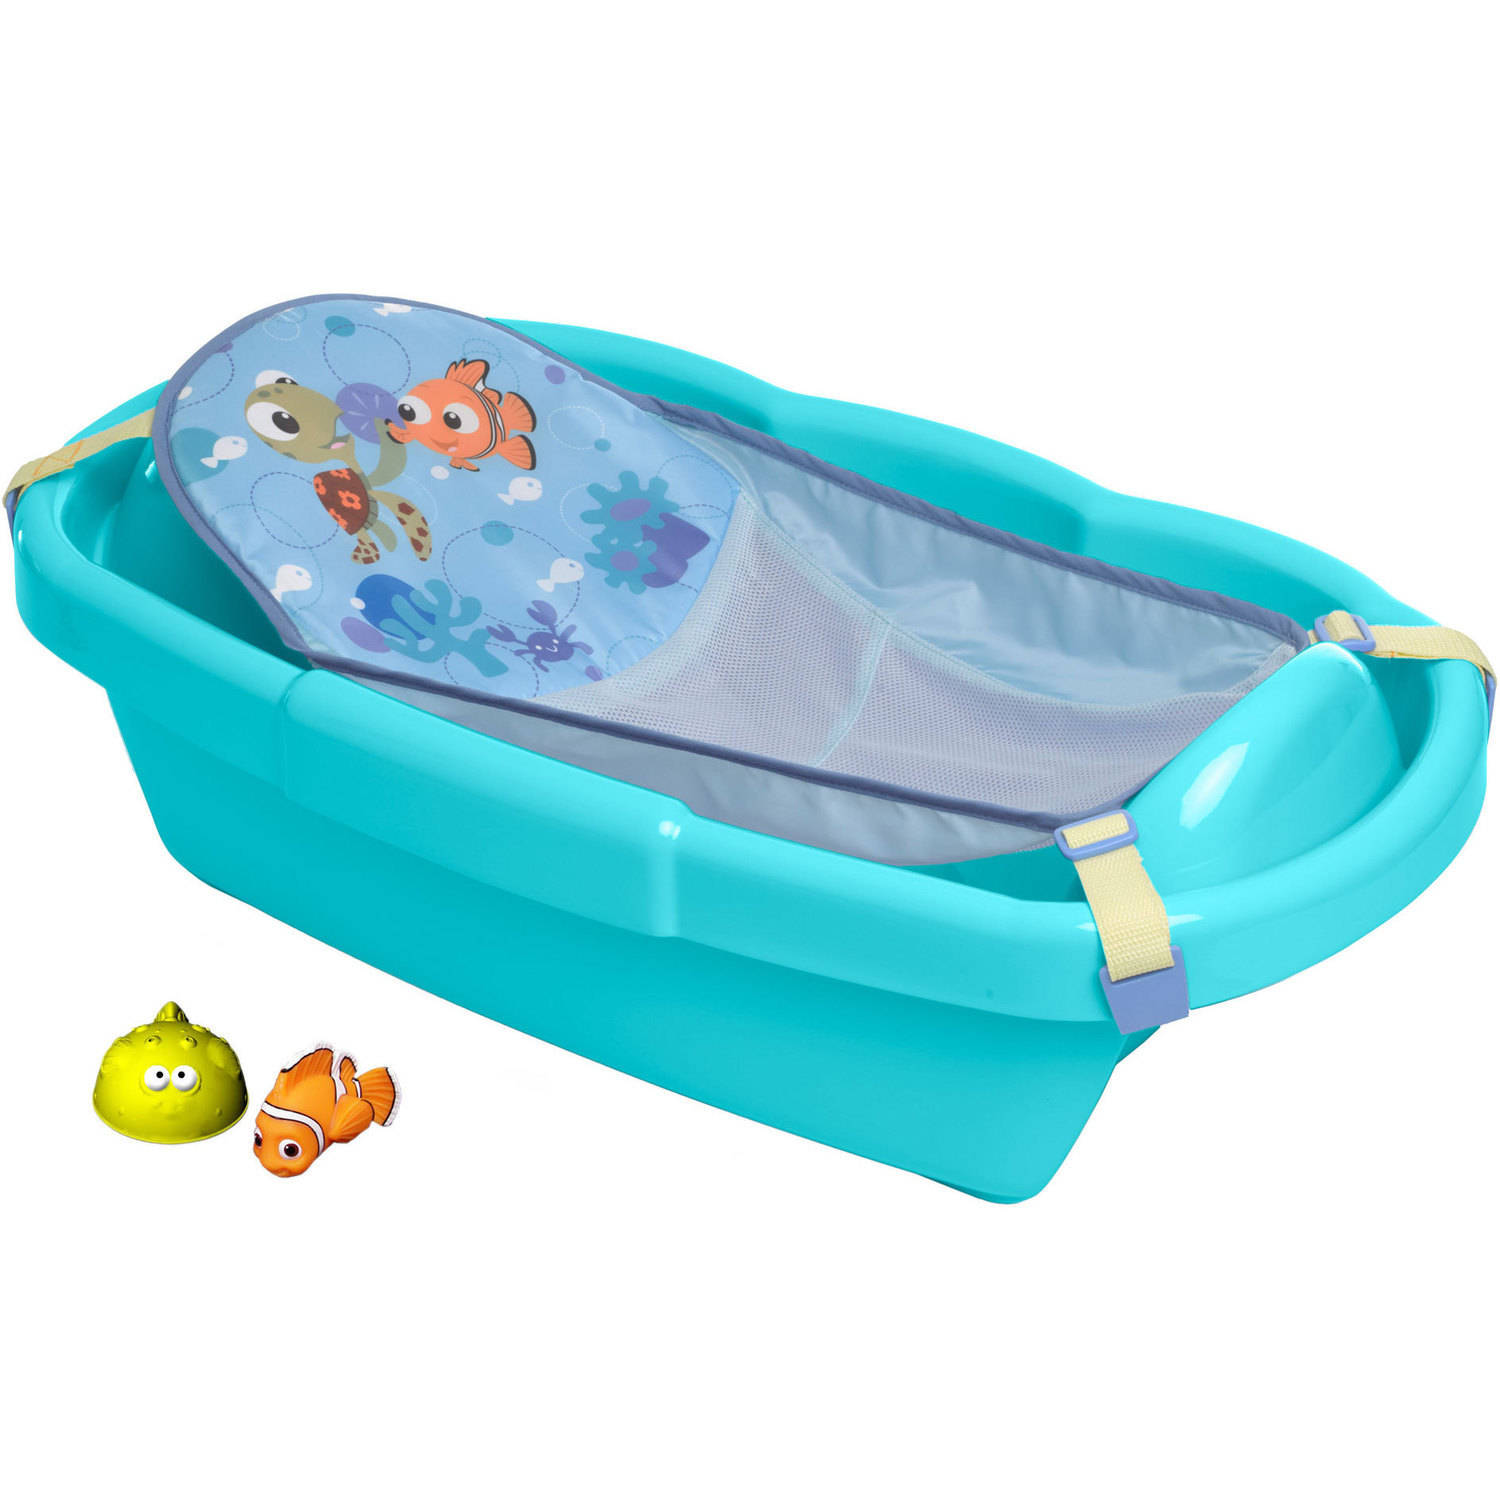 Disney Pixar Finding Nemo Infant to Toddler Tub, Blue